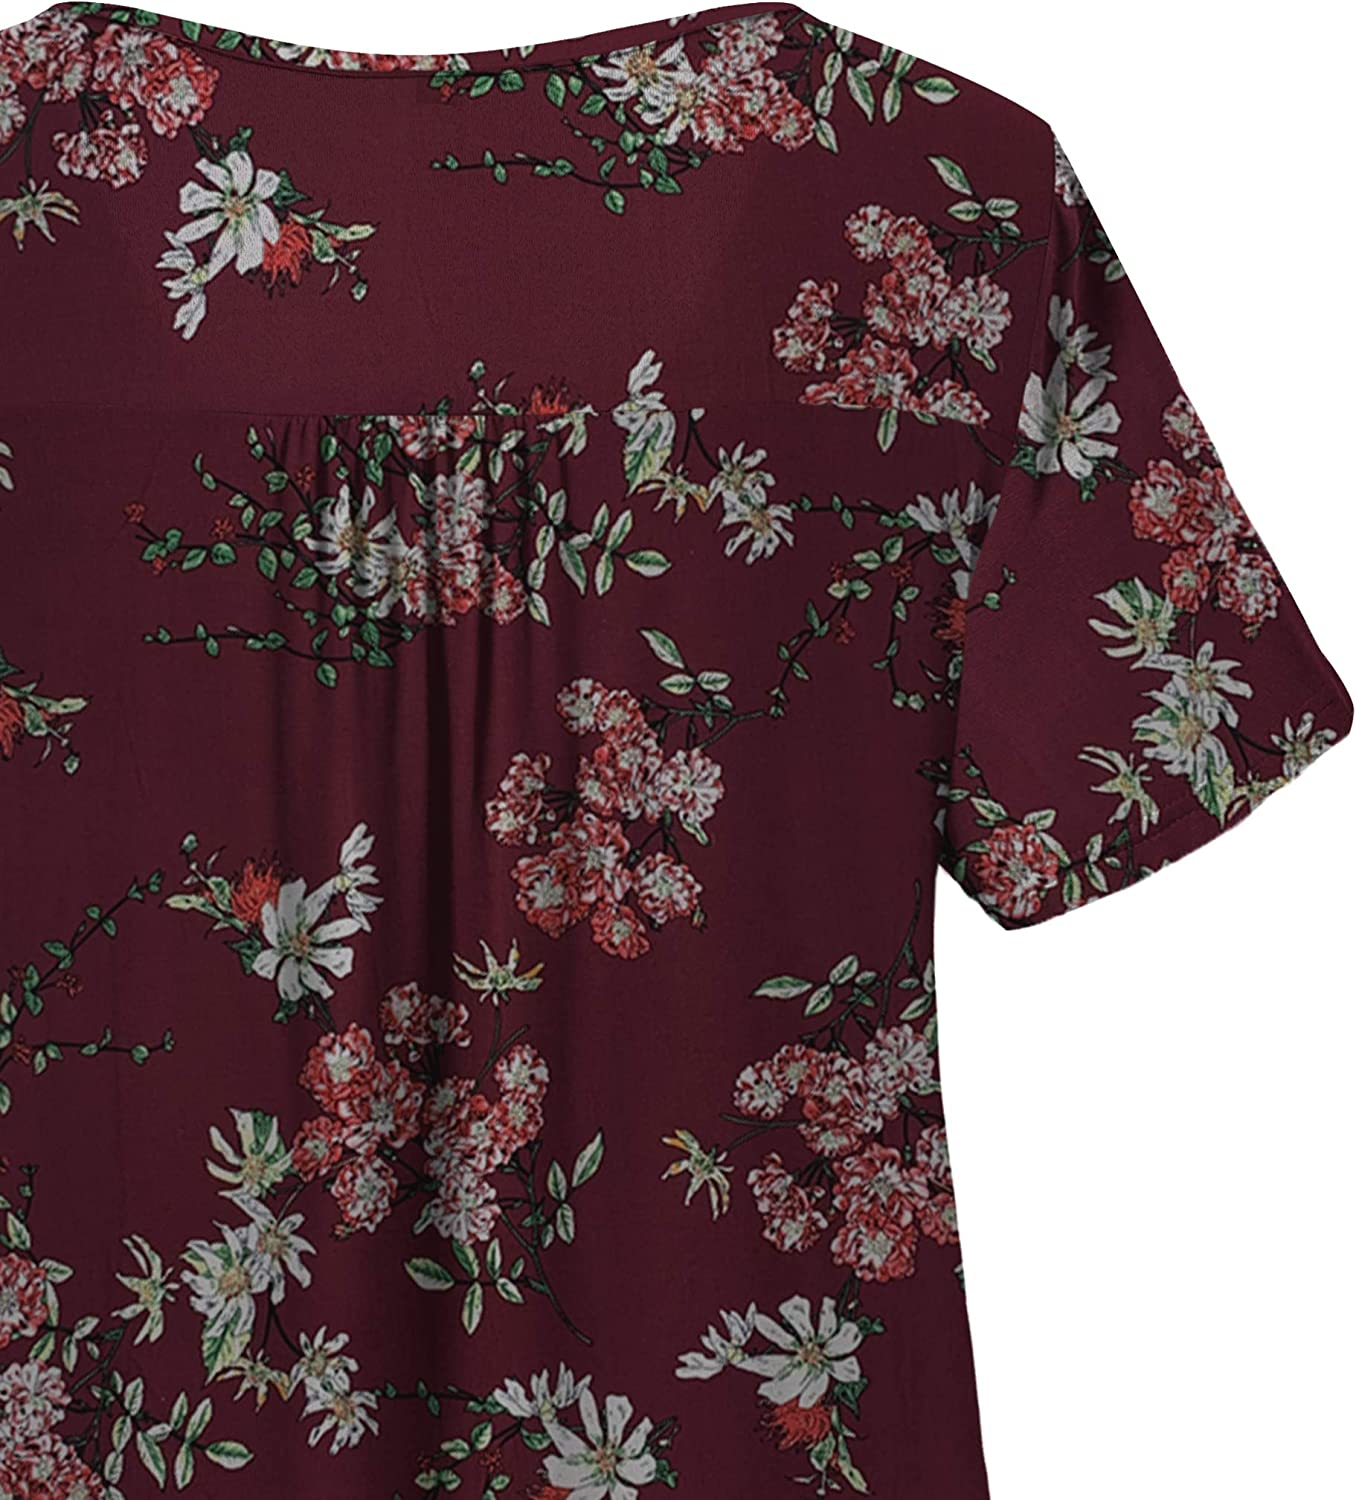 CPOKRTWSO Womens Plus Size Casual Tunic Tops Floral Blouses Long Sleeve Henley T Shirts for Women M-3XL